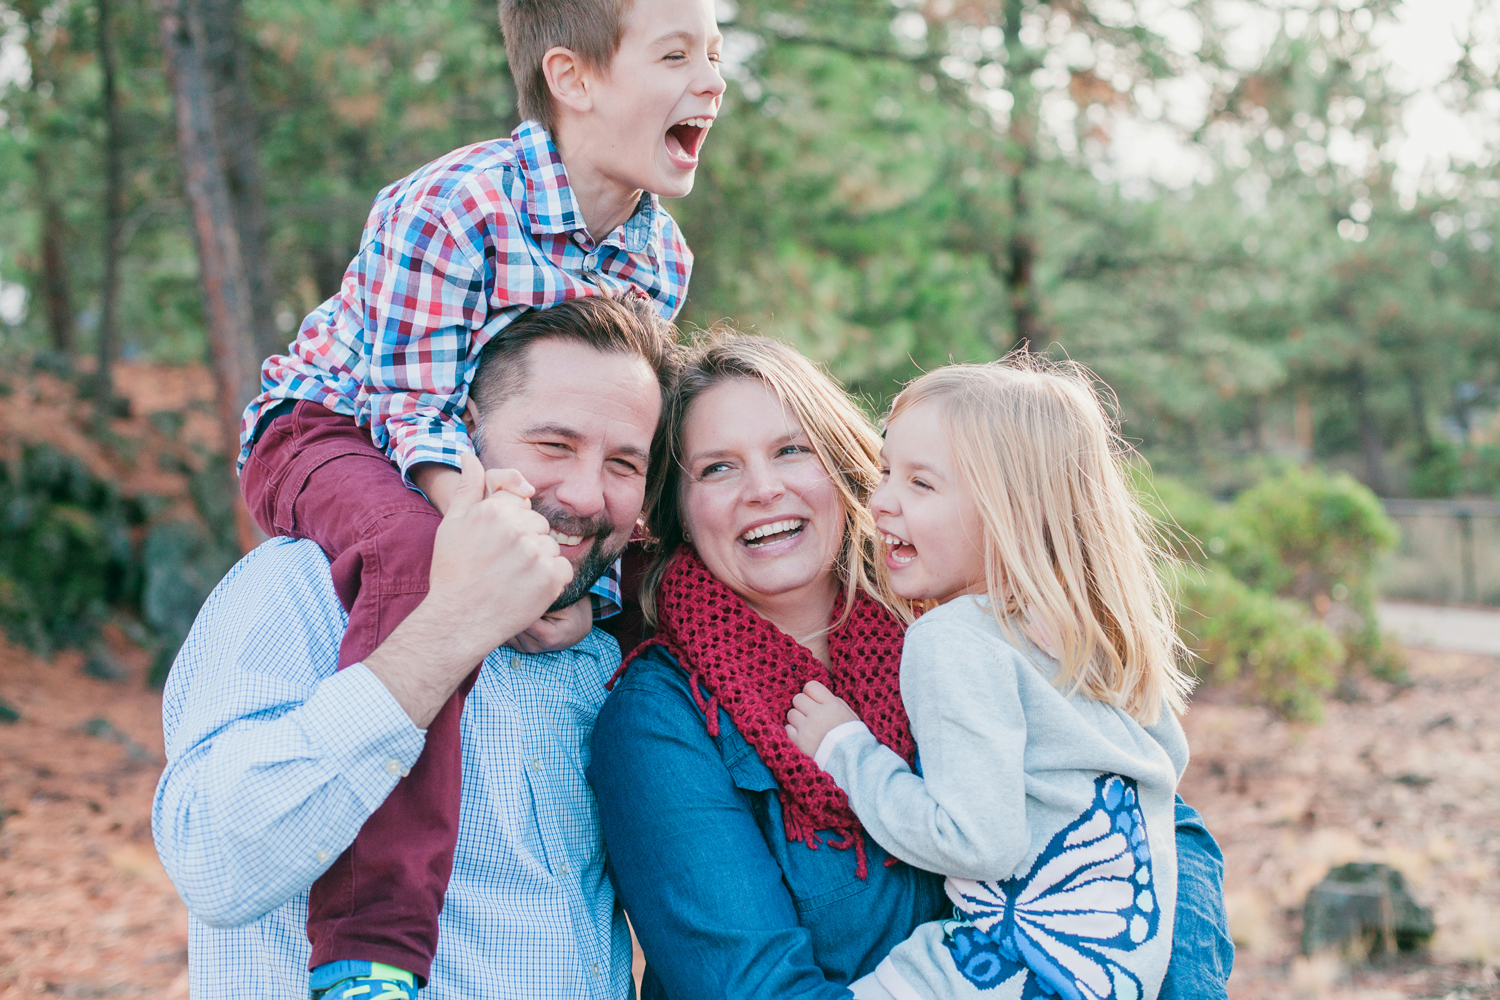 The Suitcase Studio offers fun lifestyle photography and documentary family photography services in bend, oregon, orange county, california and nationwide.